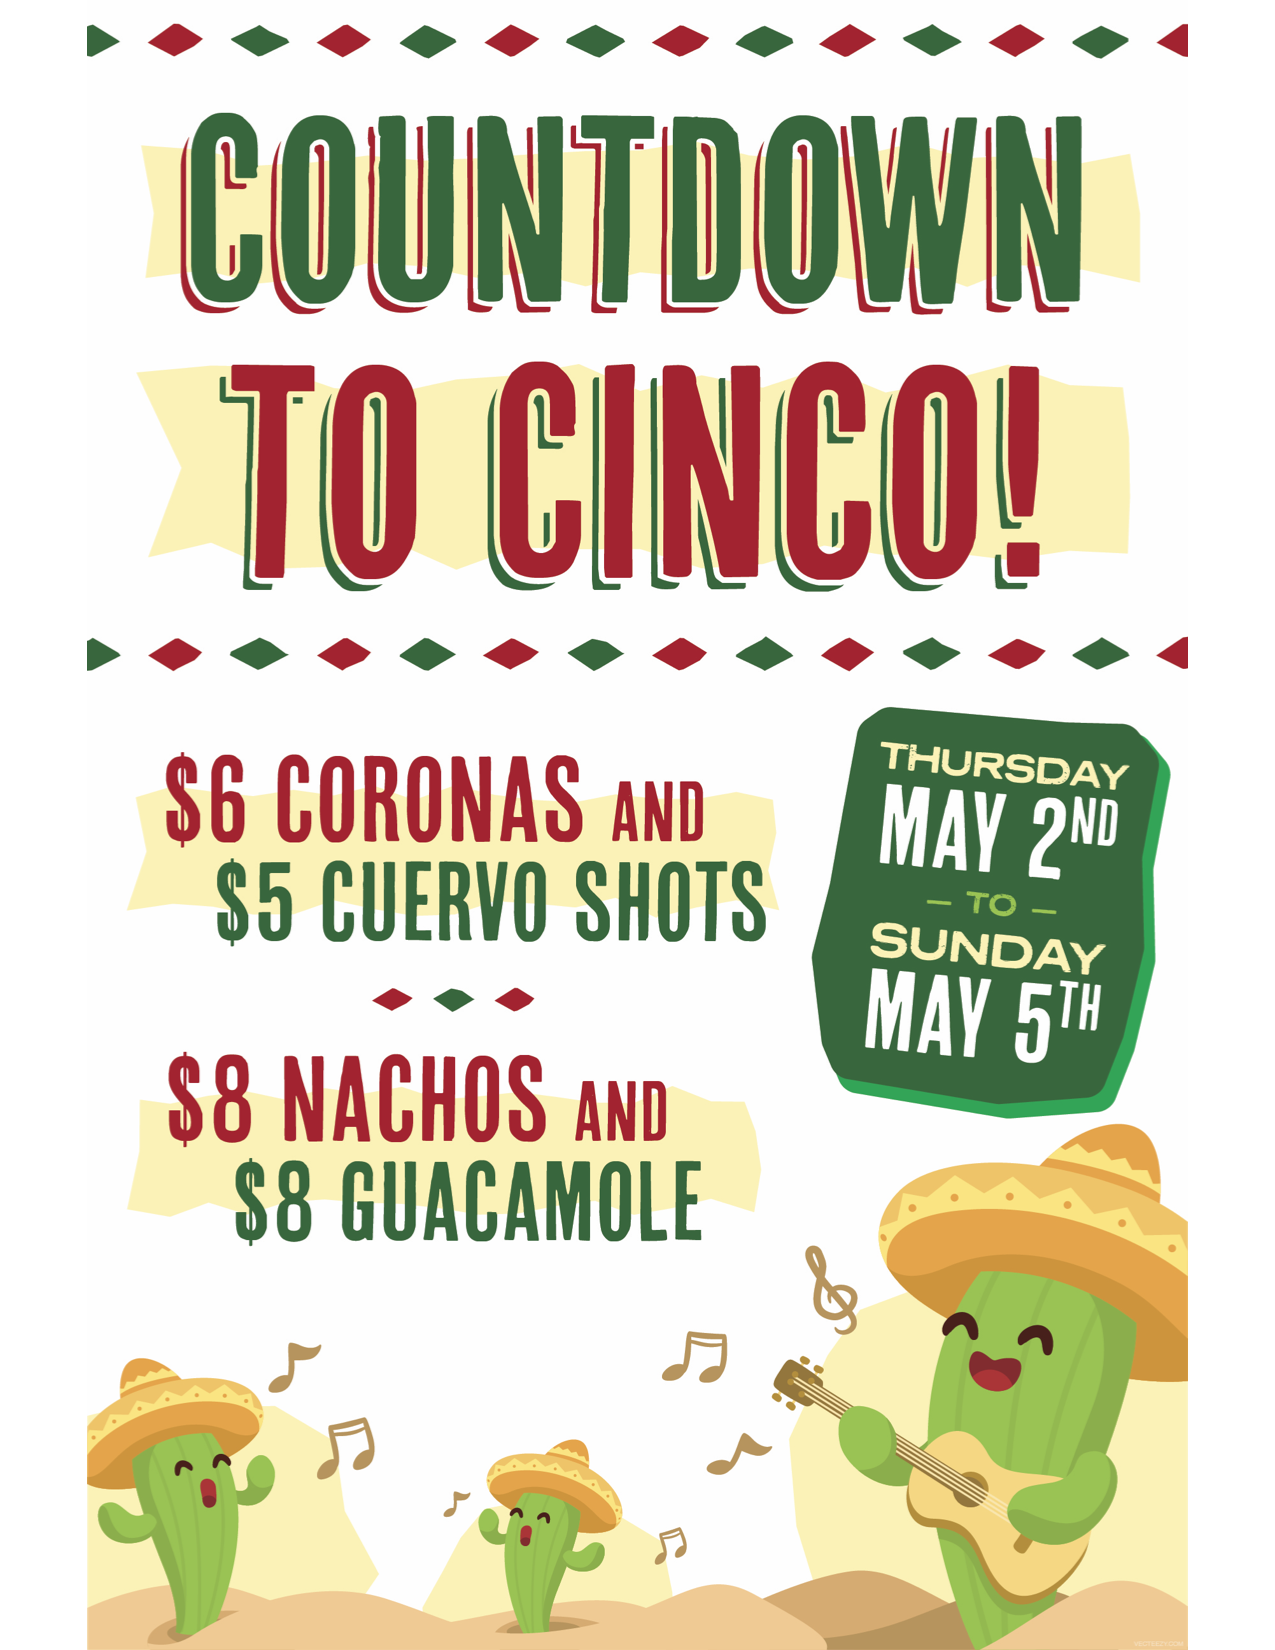 Countdown to Cinco